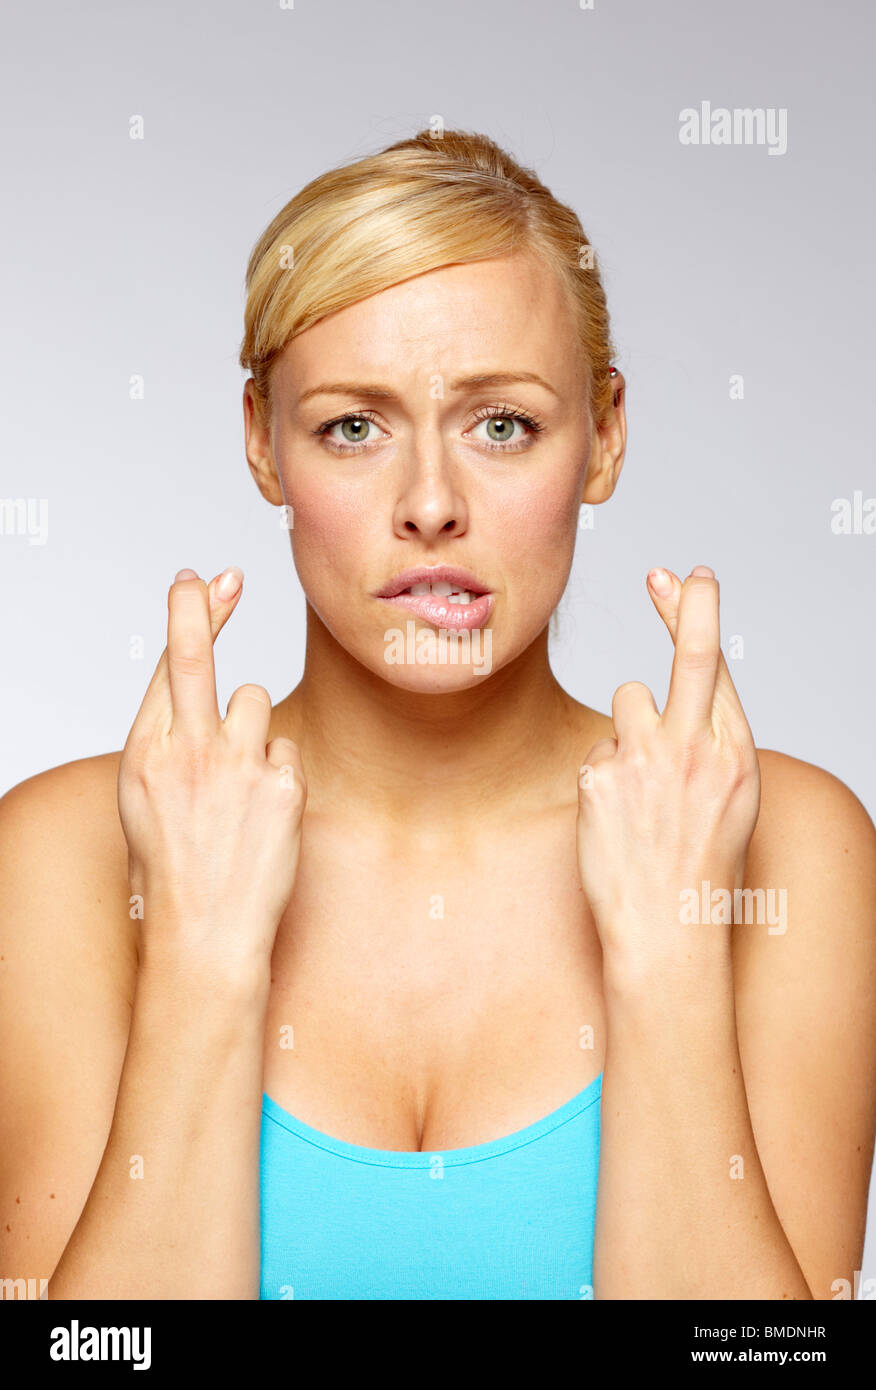 Woman with fingers crossed - Stock Image